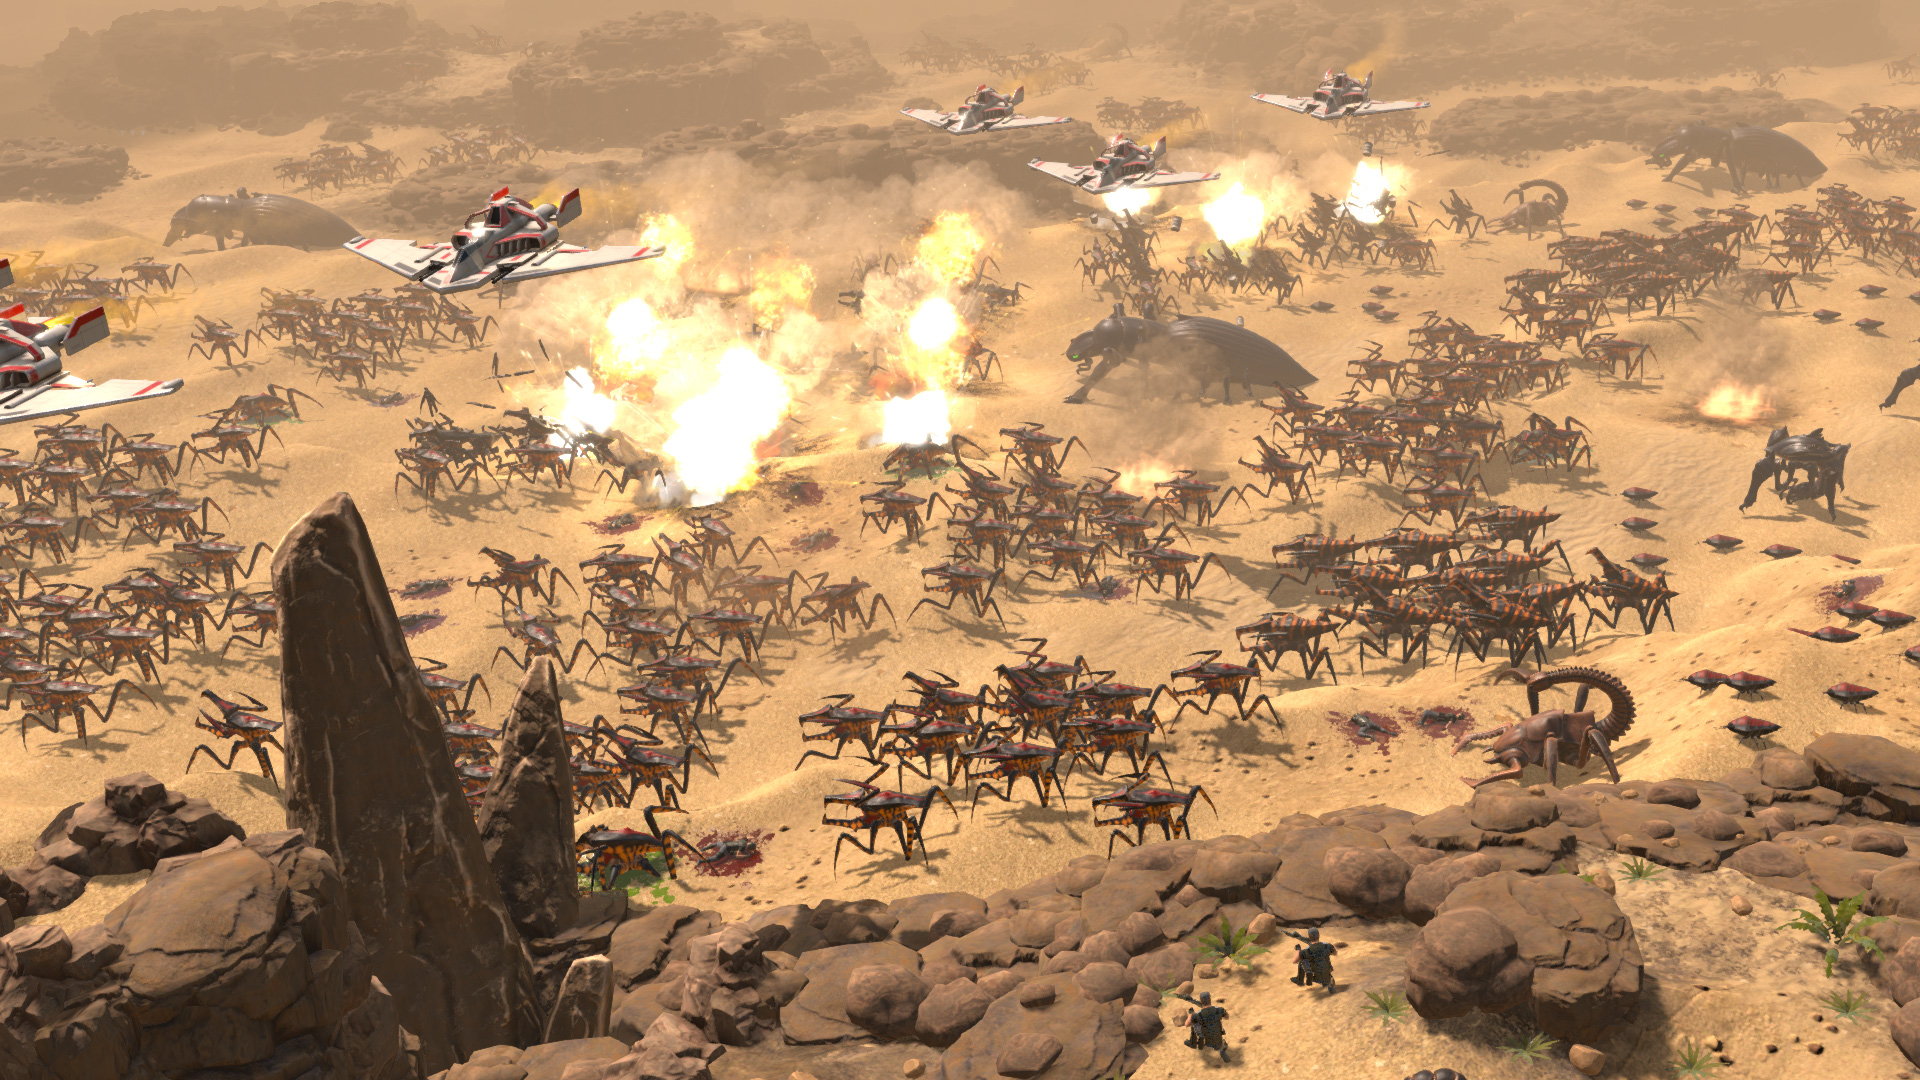 Starship Troopers is being turned into an RTS, probably won't have an iconic shower scene screenshot